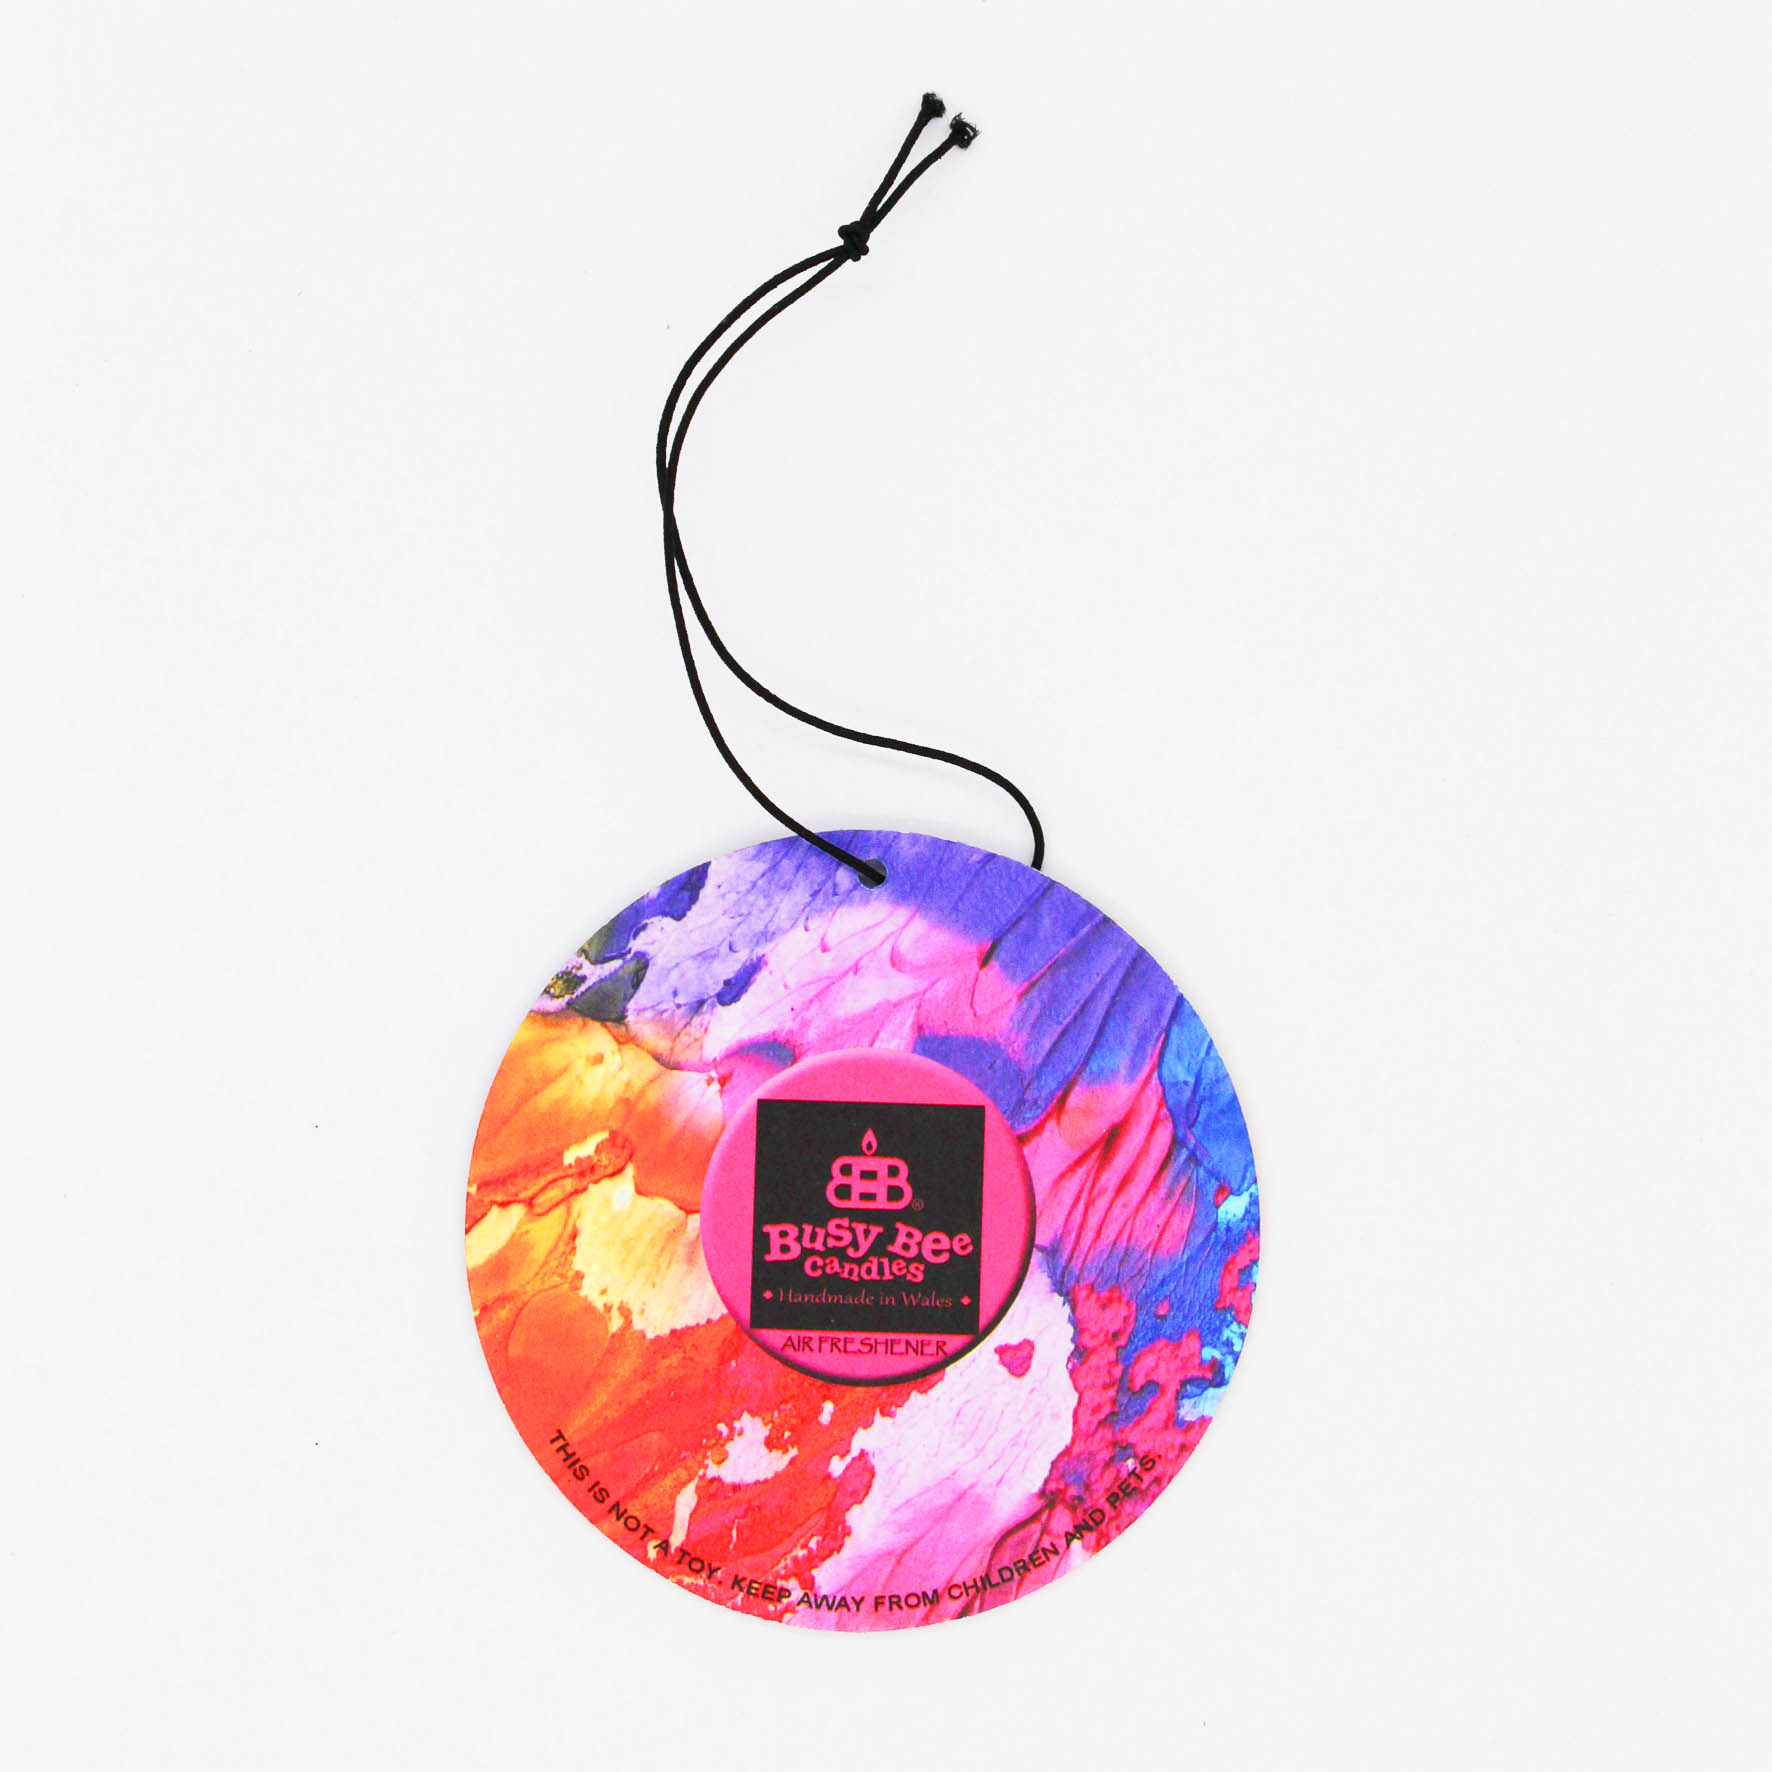 Spiced And Candied Hanging Air Freshener